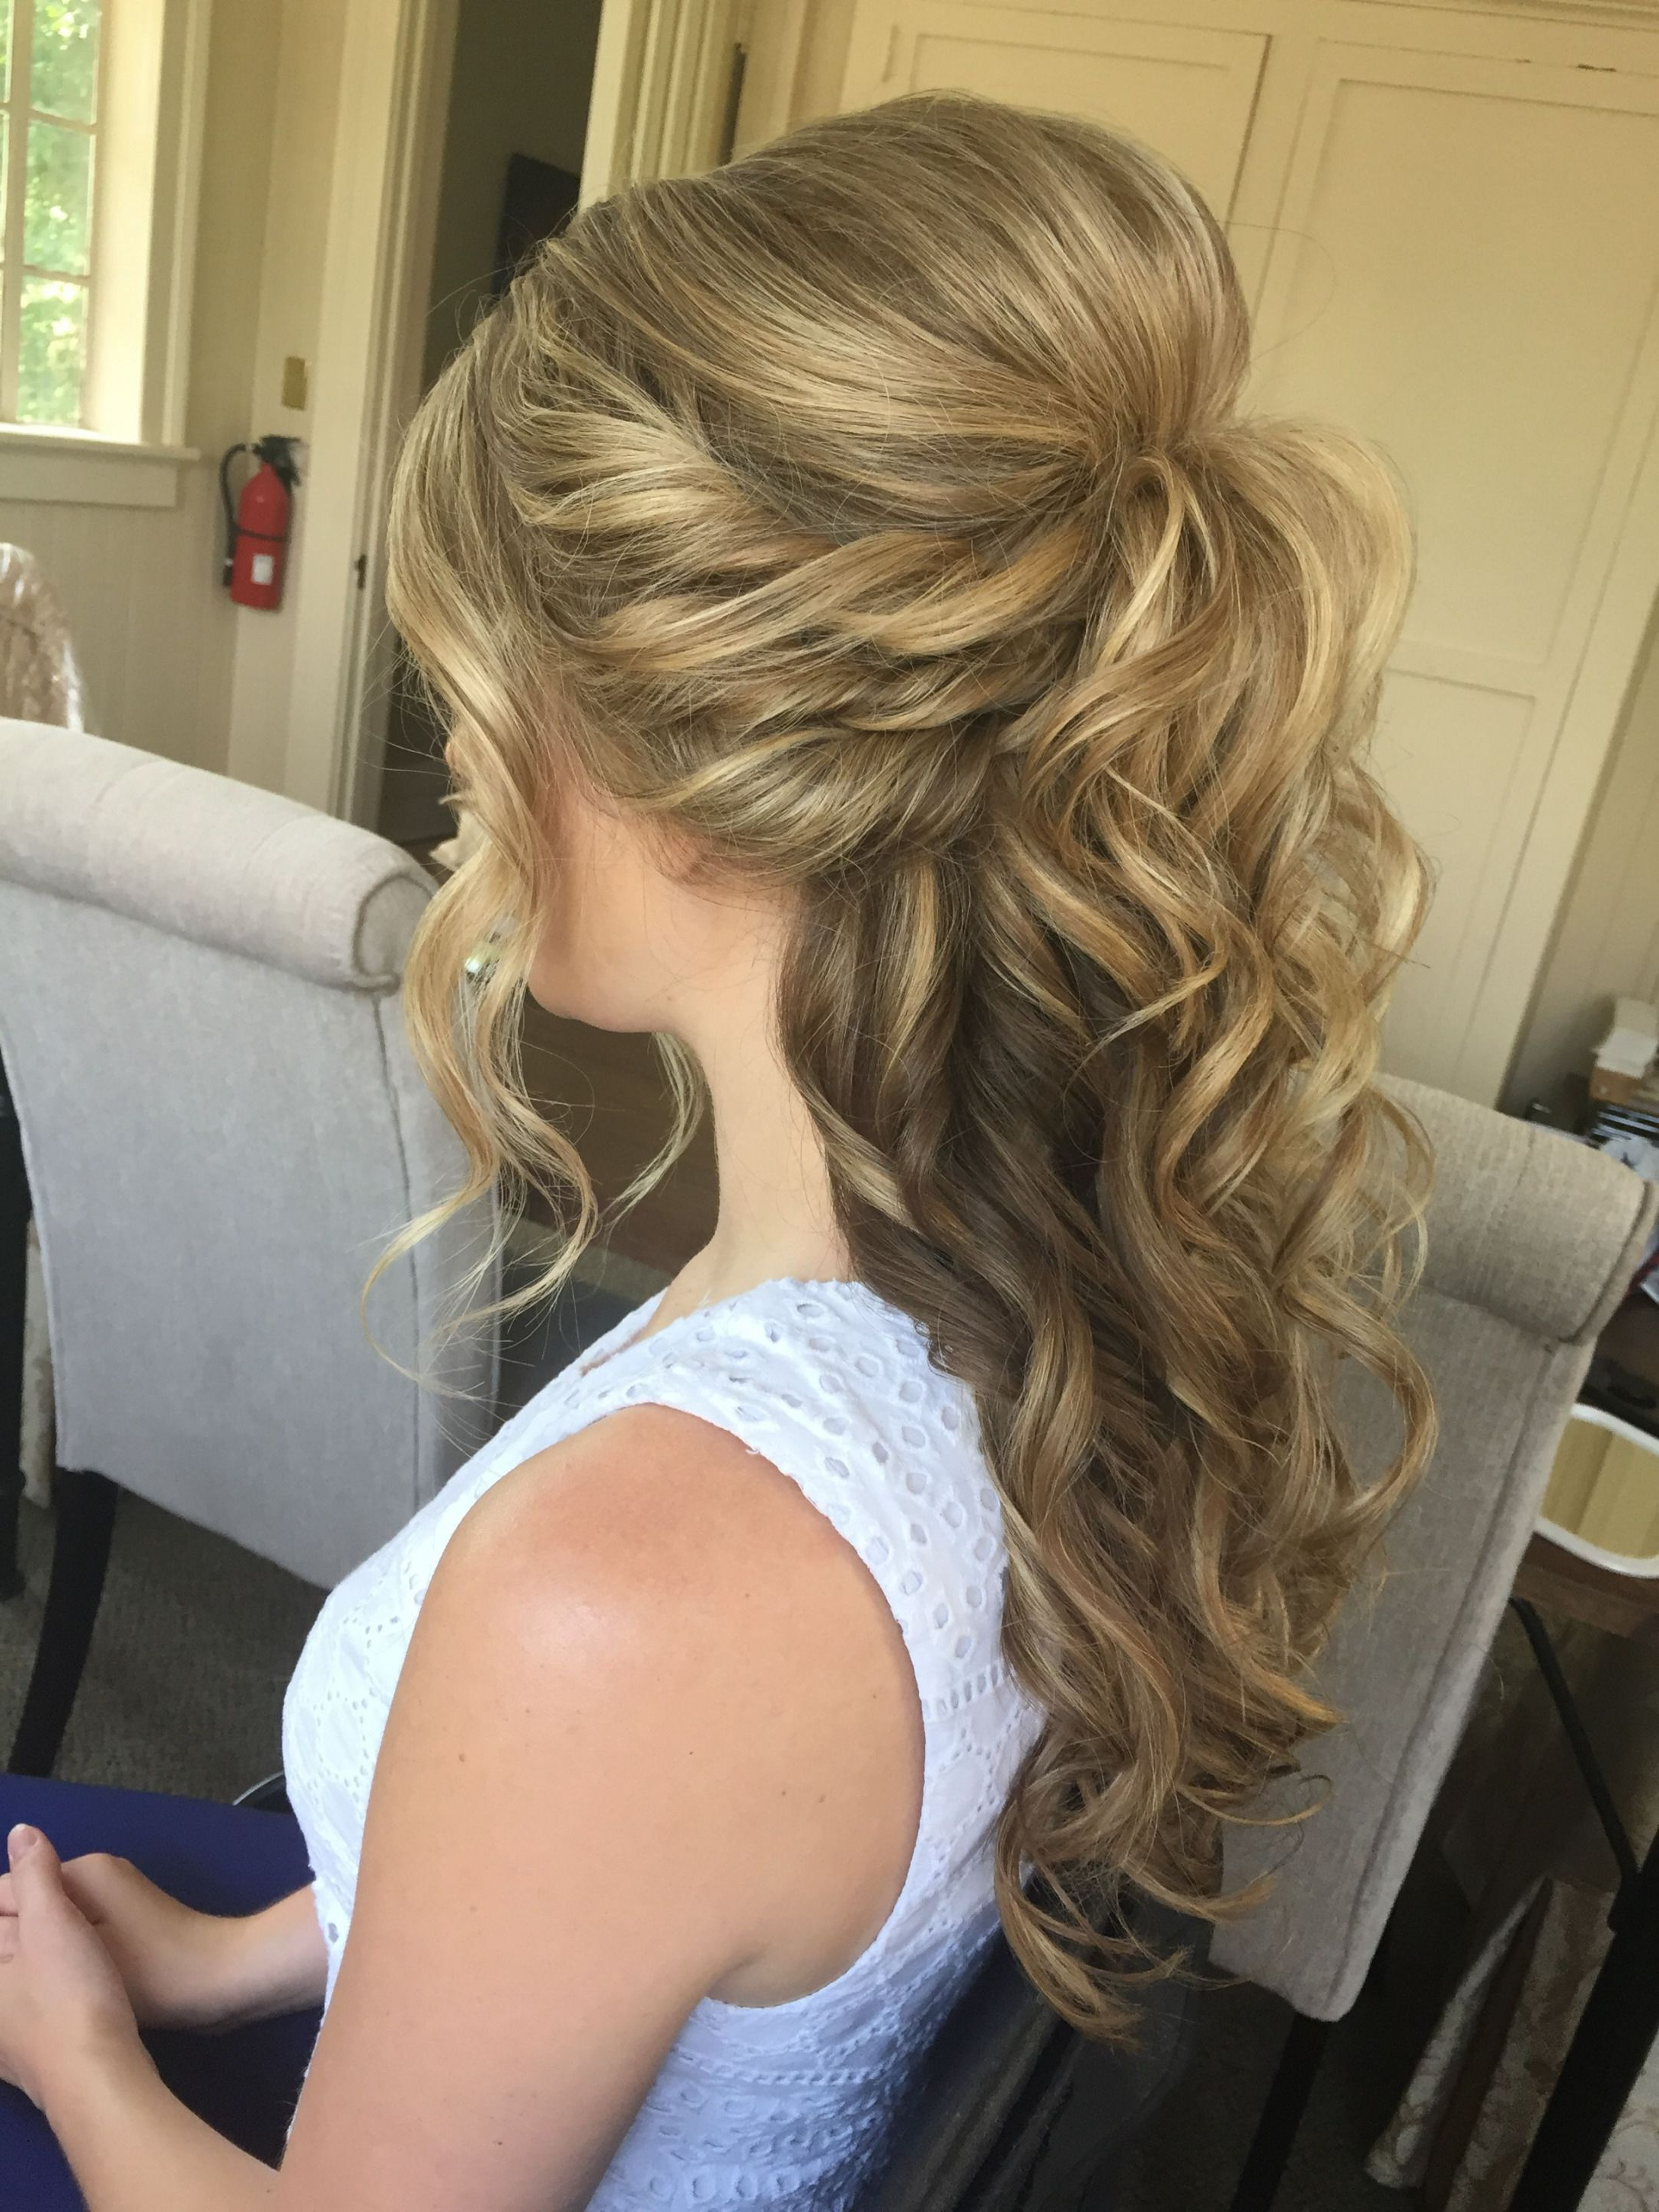 Widely Used Medium Hairstyles Half Up With Image Result For Wedding Hairstyles Half Up Half Down Medium Length (View 20 of 20)